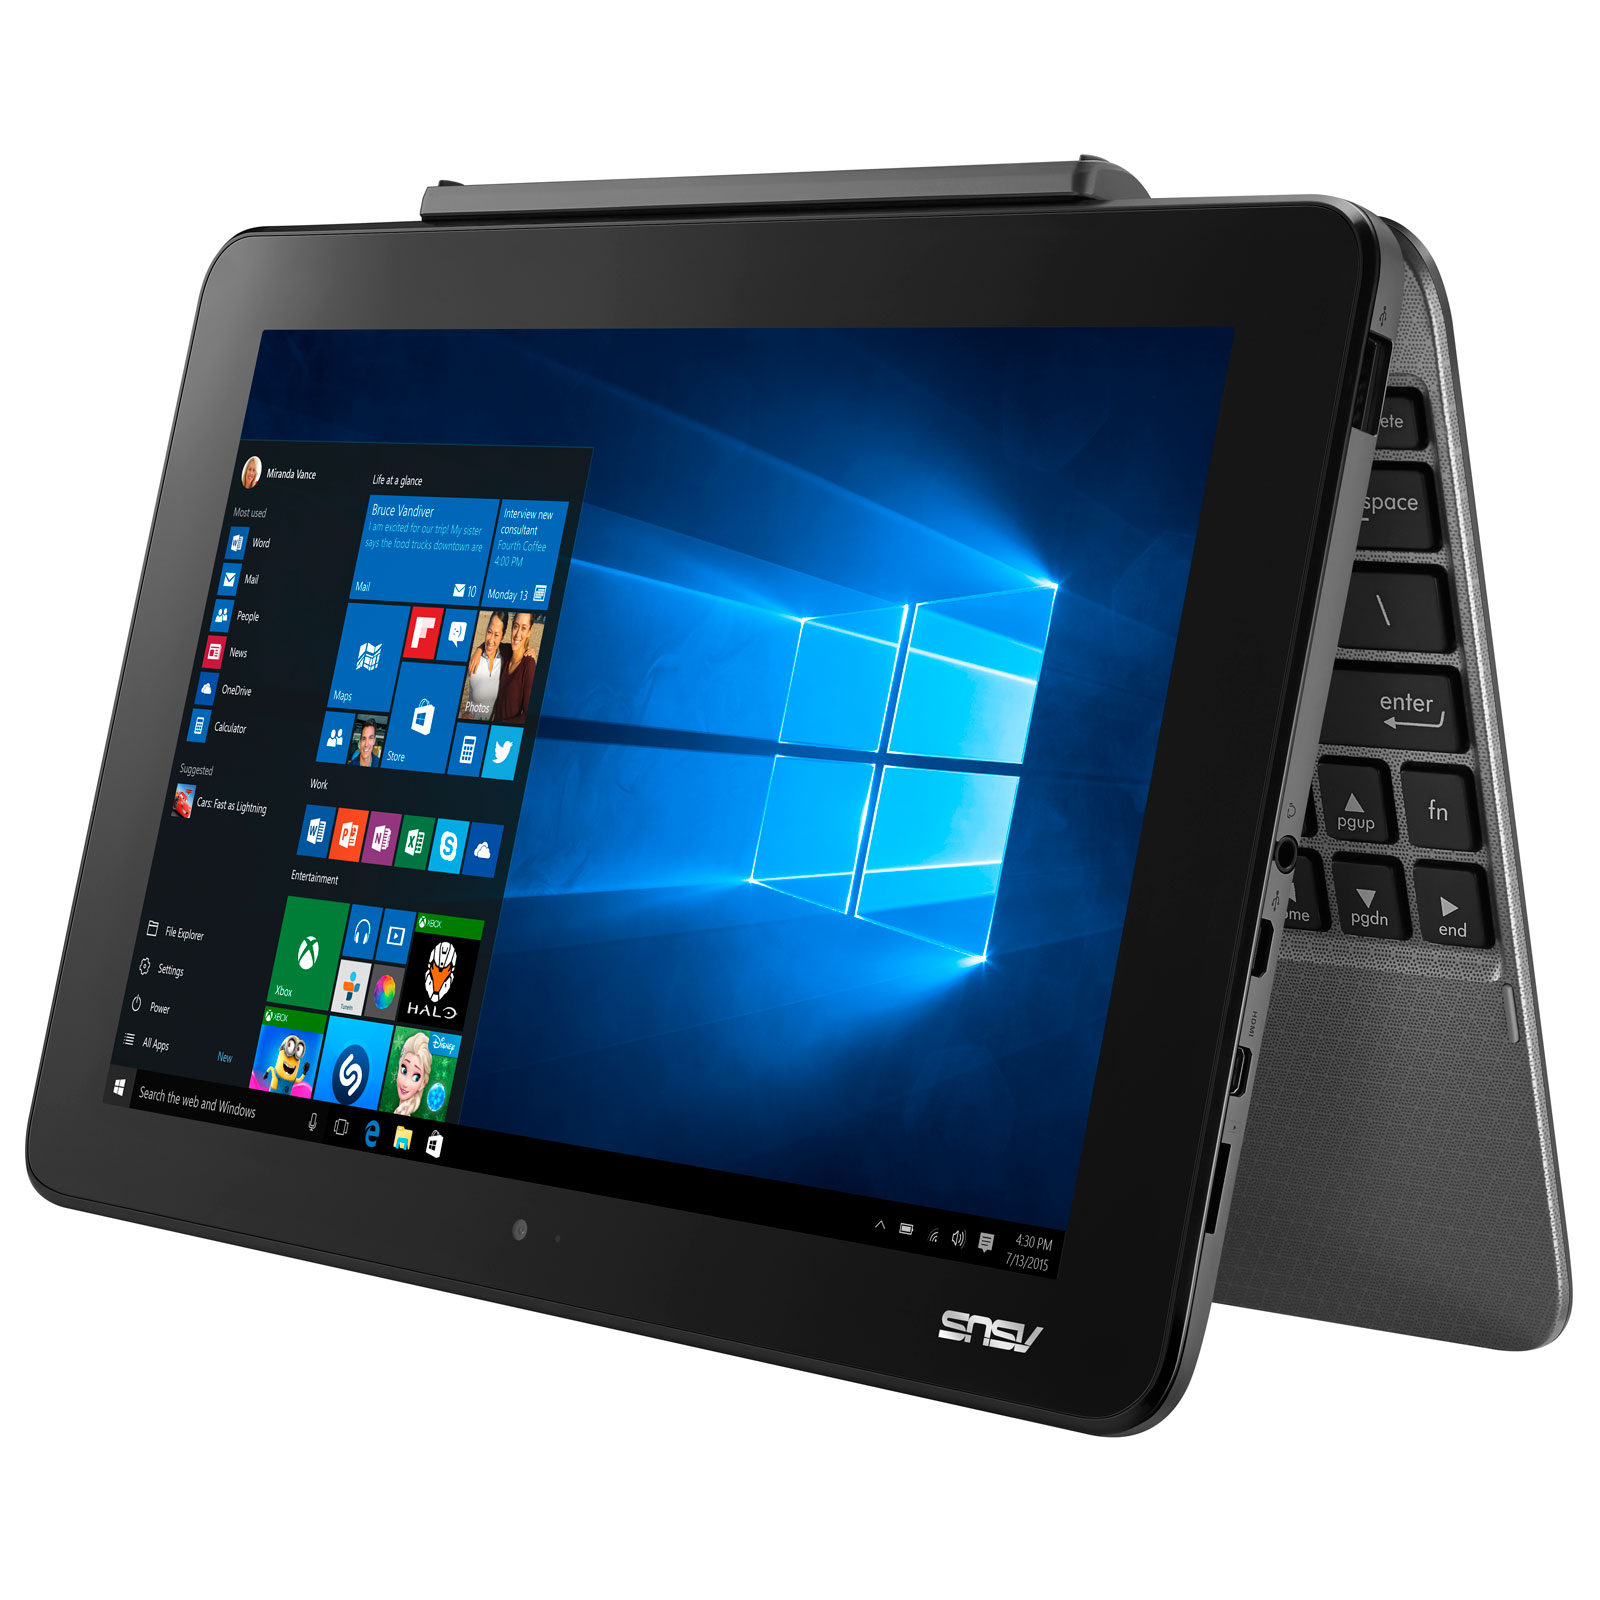 Asus T101HA-GR029RB - PC portable Asus - Cybertek.fr - 2